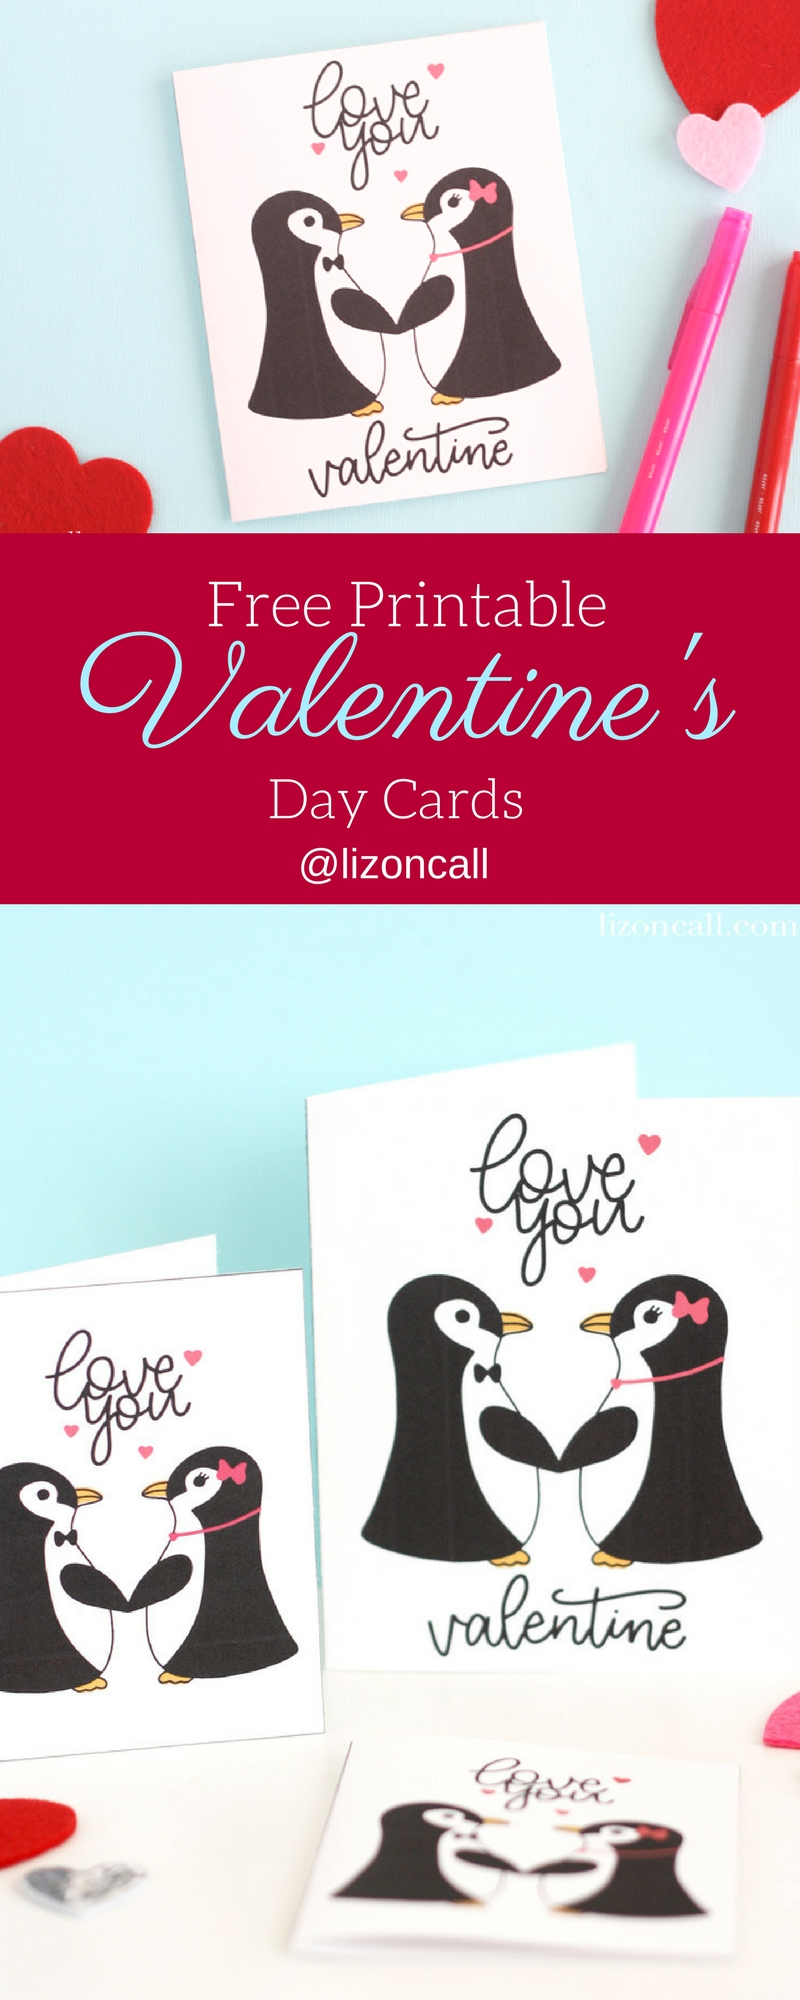 This year print out this free printable Valentine's Day card for gifting to the special someone in your life. #valentinesday #freeprintable #valentinesdaycard #valentinescard